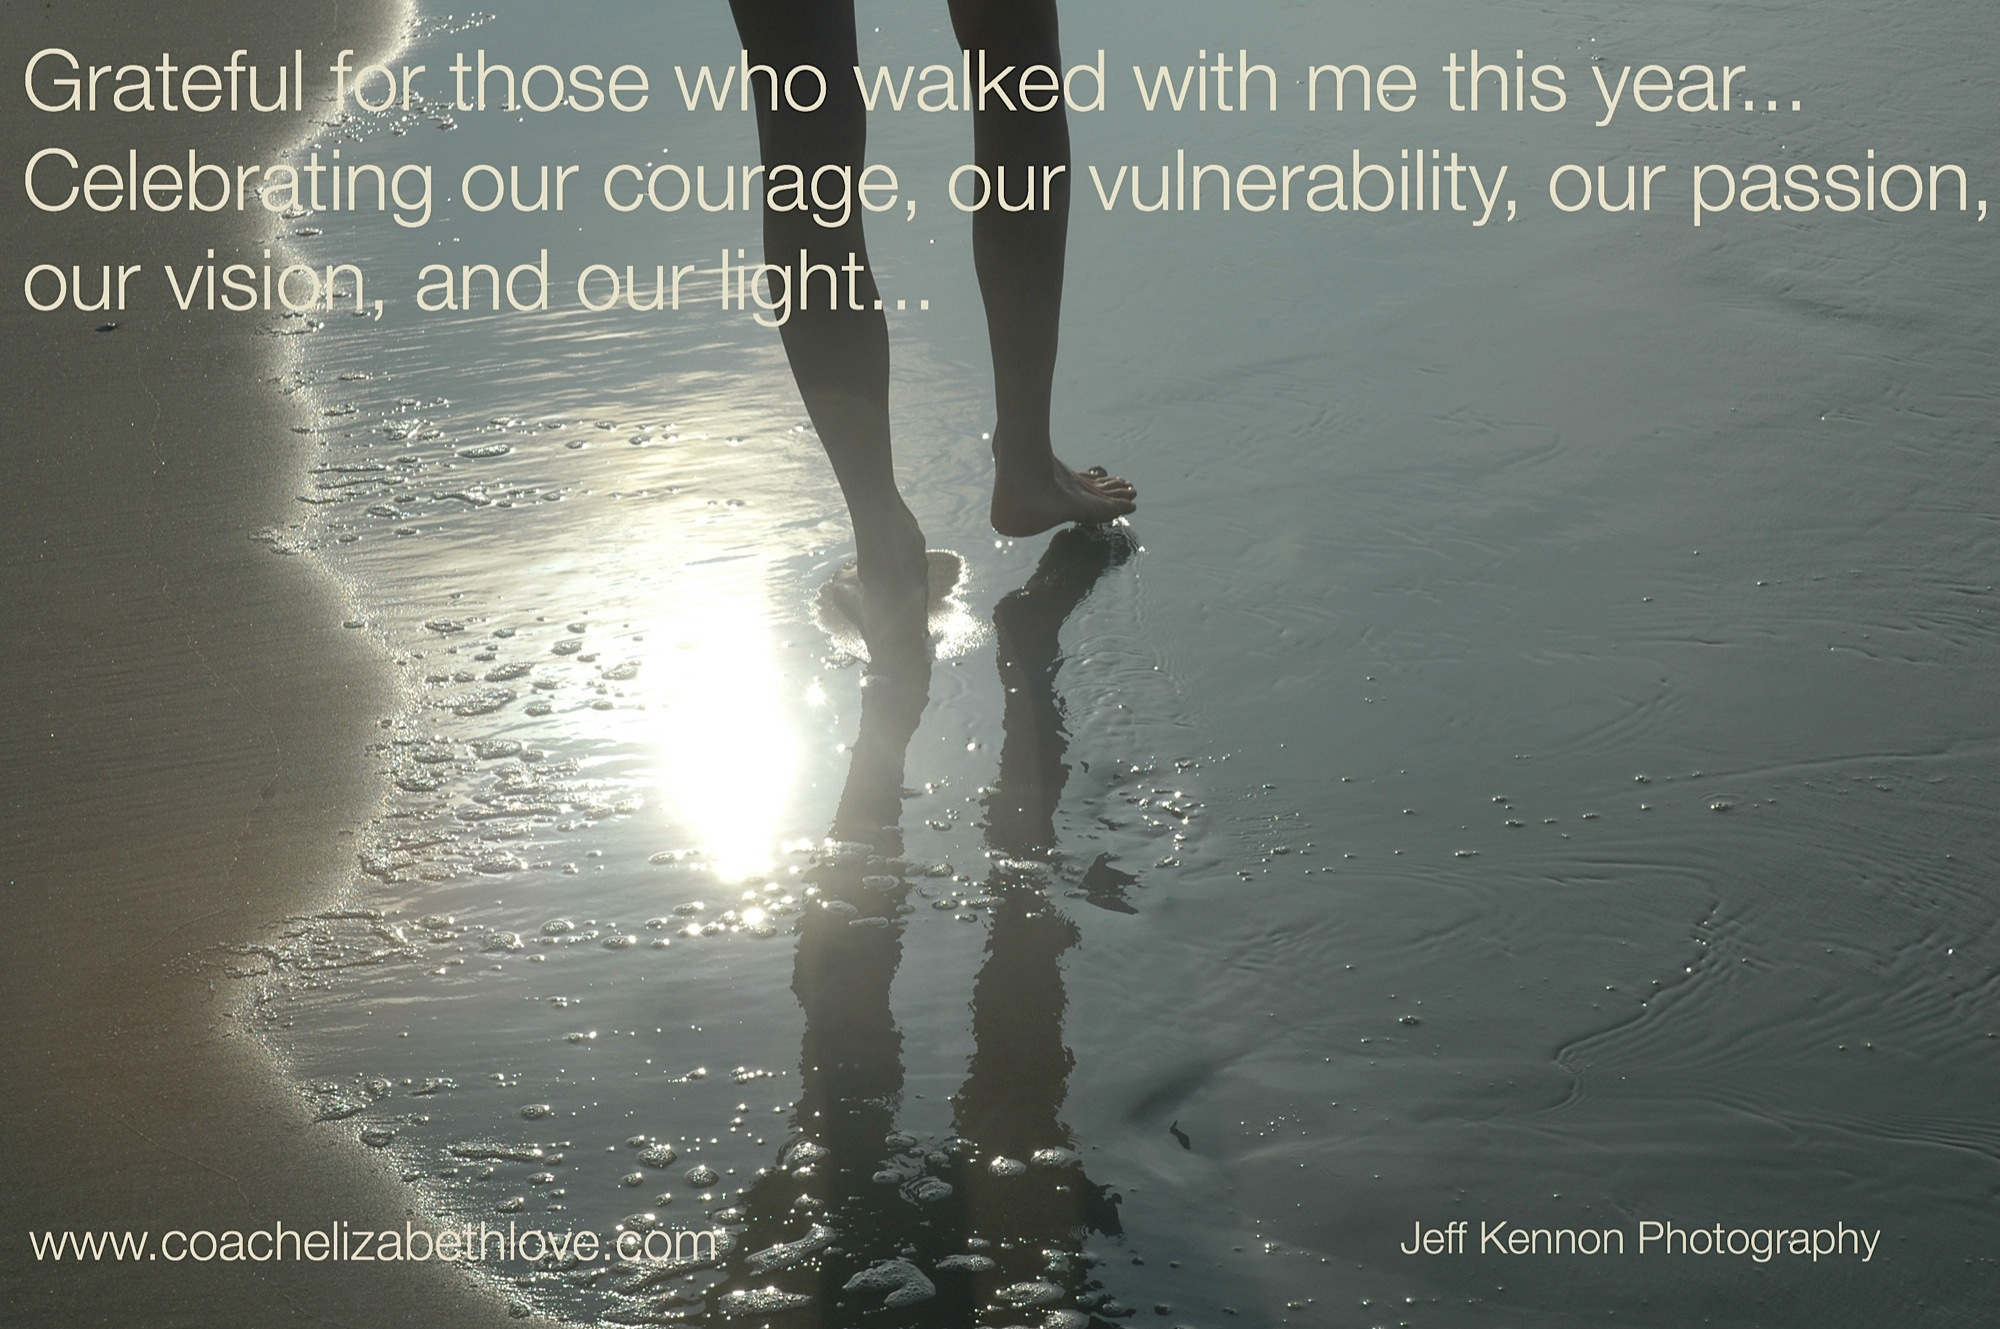 Grateful for those who walked with me